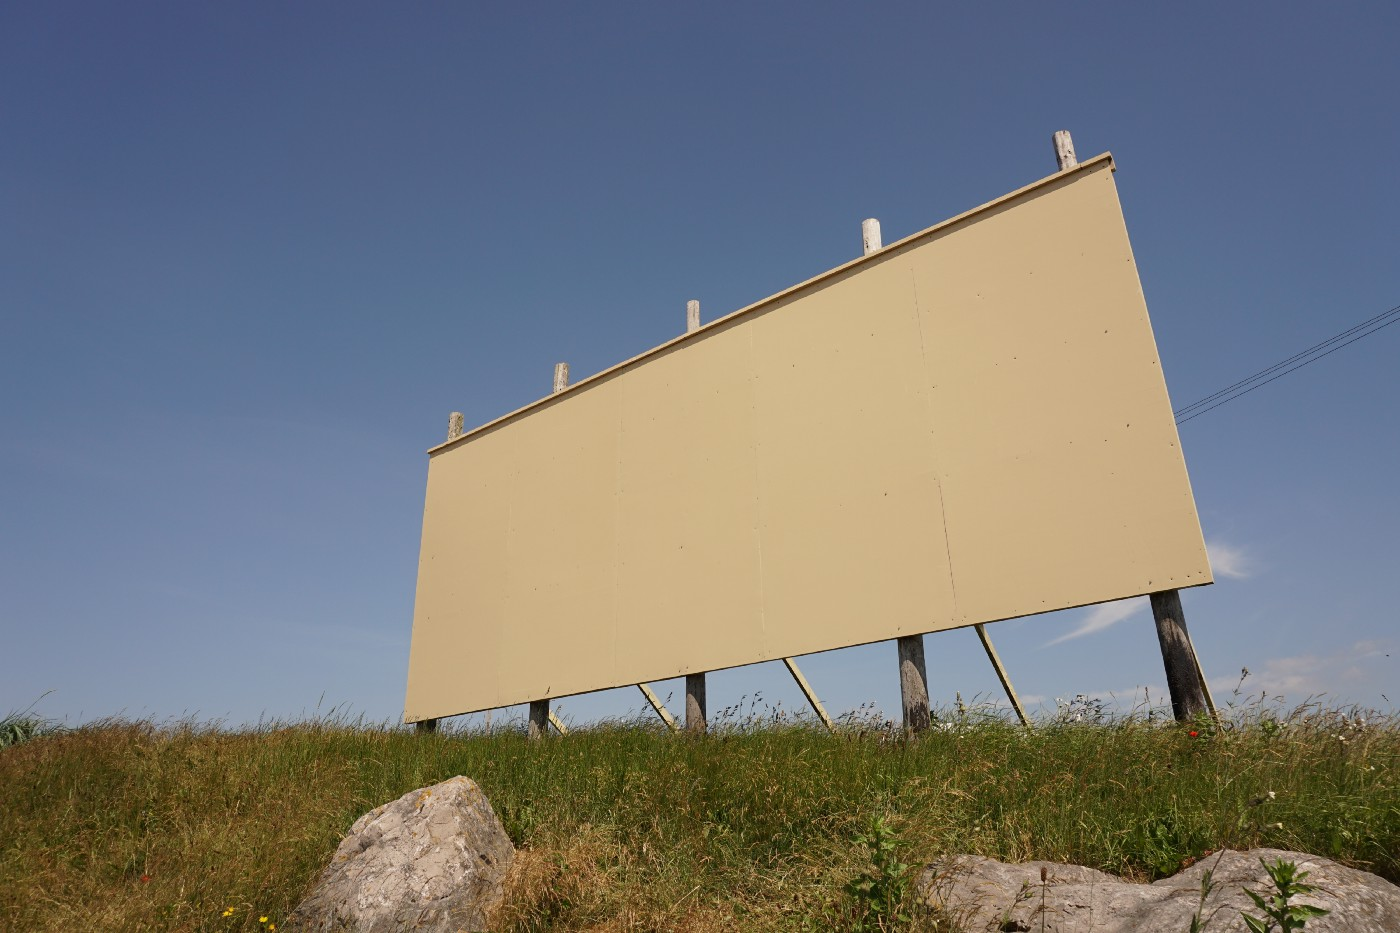 A blank, white billboard on the side of a deserted highway with some dry rocks and sun damaged grass.